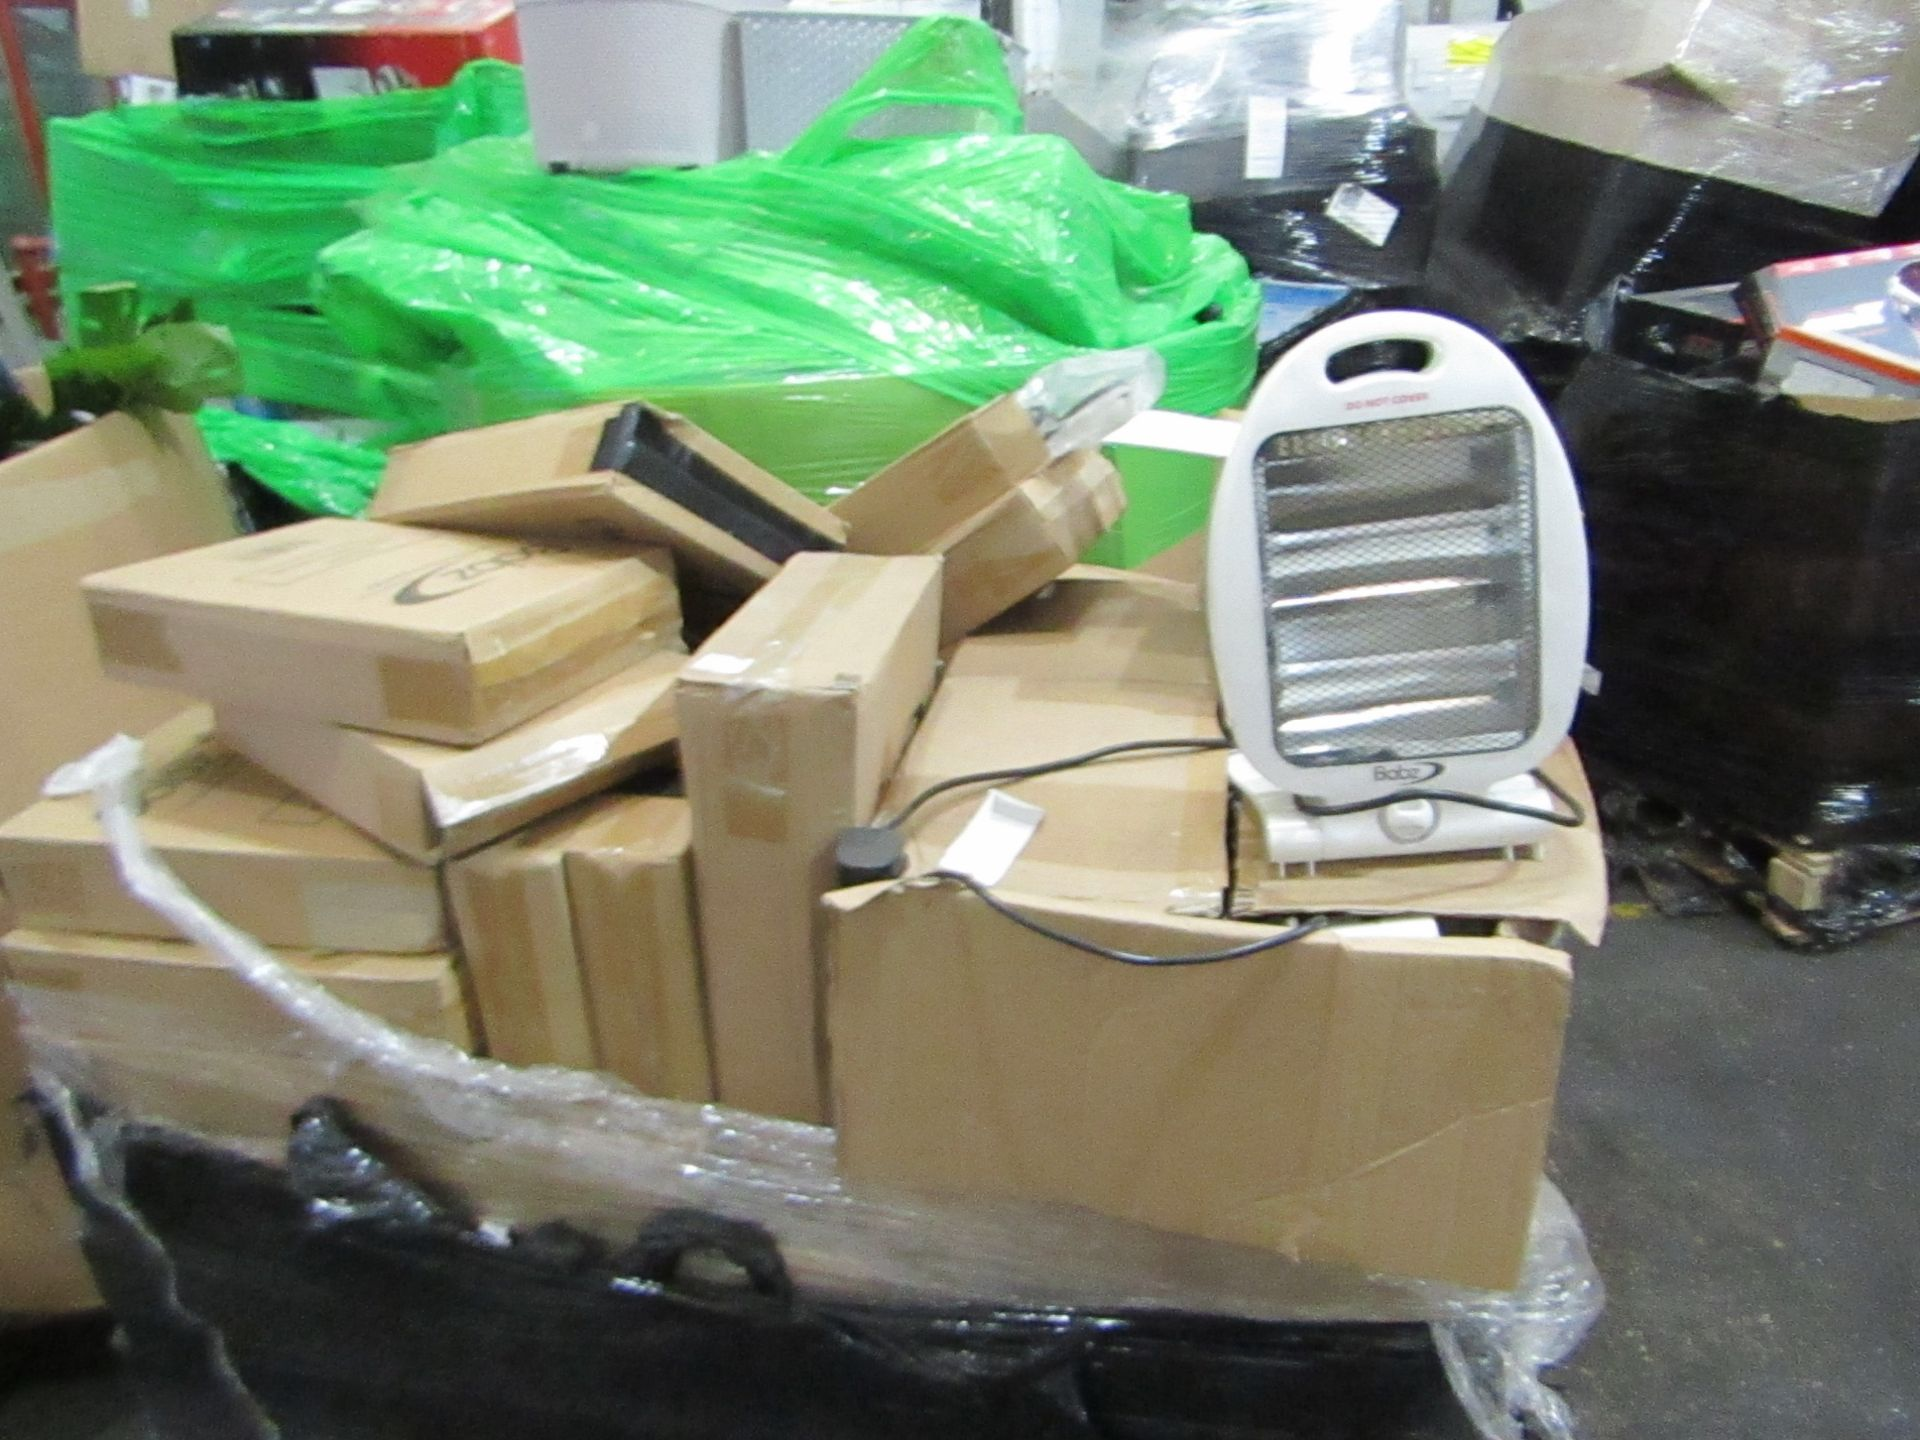 Lot 2 - Pallet of approx 60 Babz Halogen heaters, completely unchecked by us looks like a mixture of boxed